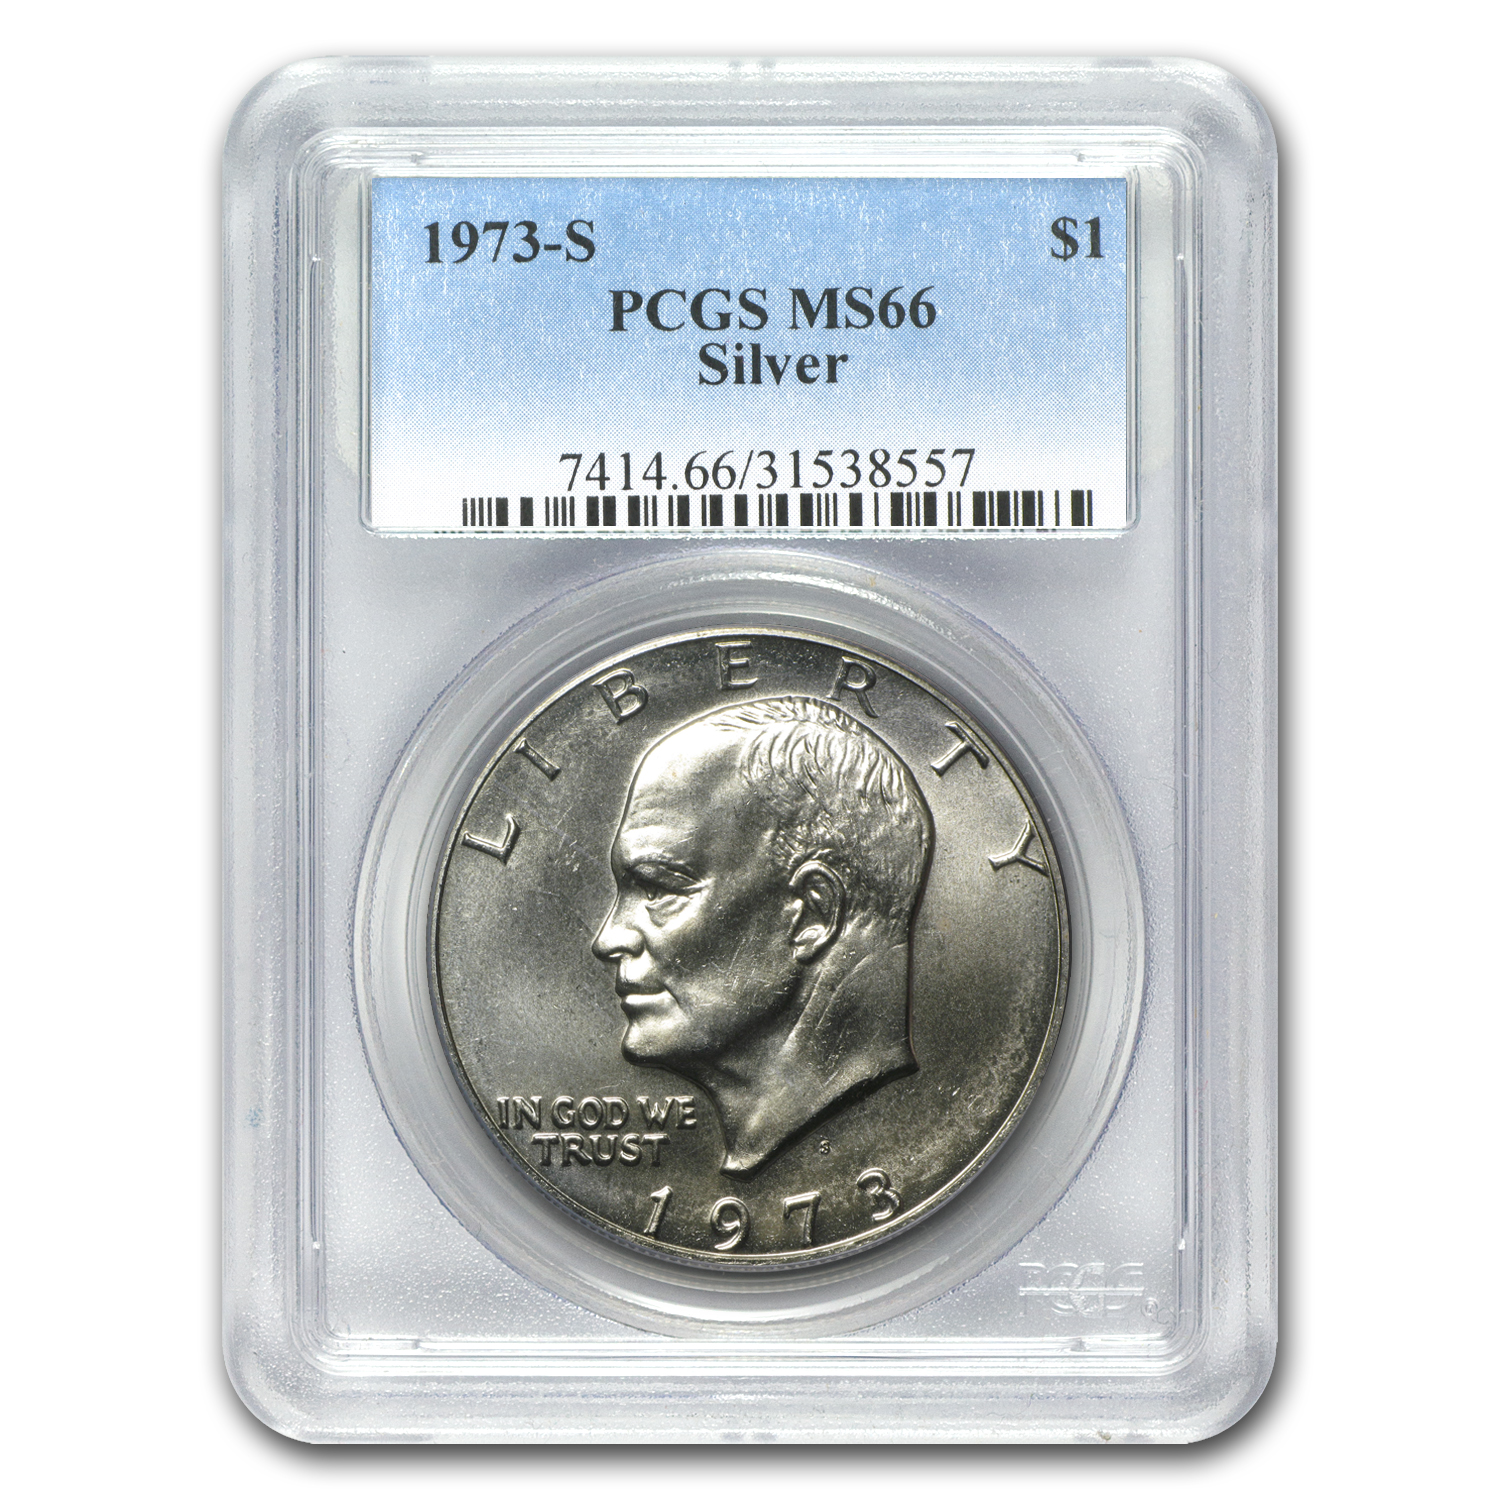 1973-S Eisenhower Silver Dollar MS-66 PCGS